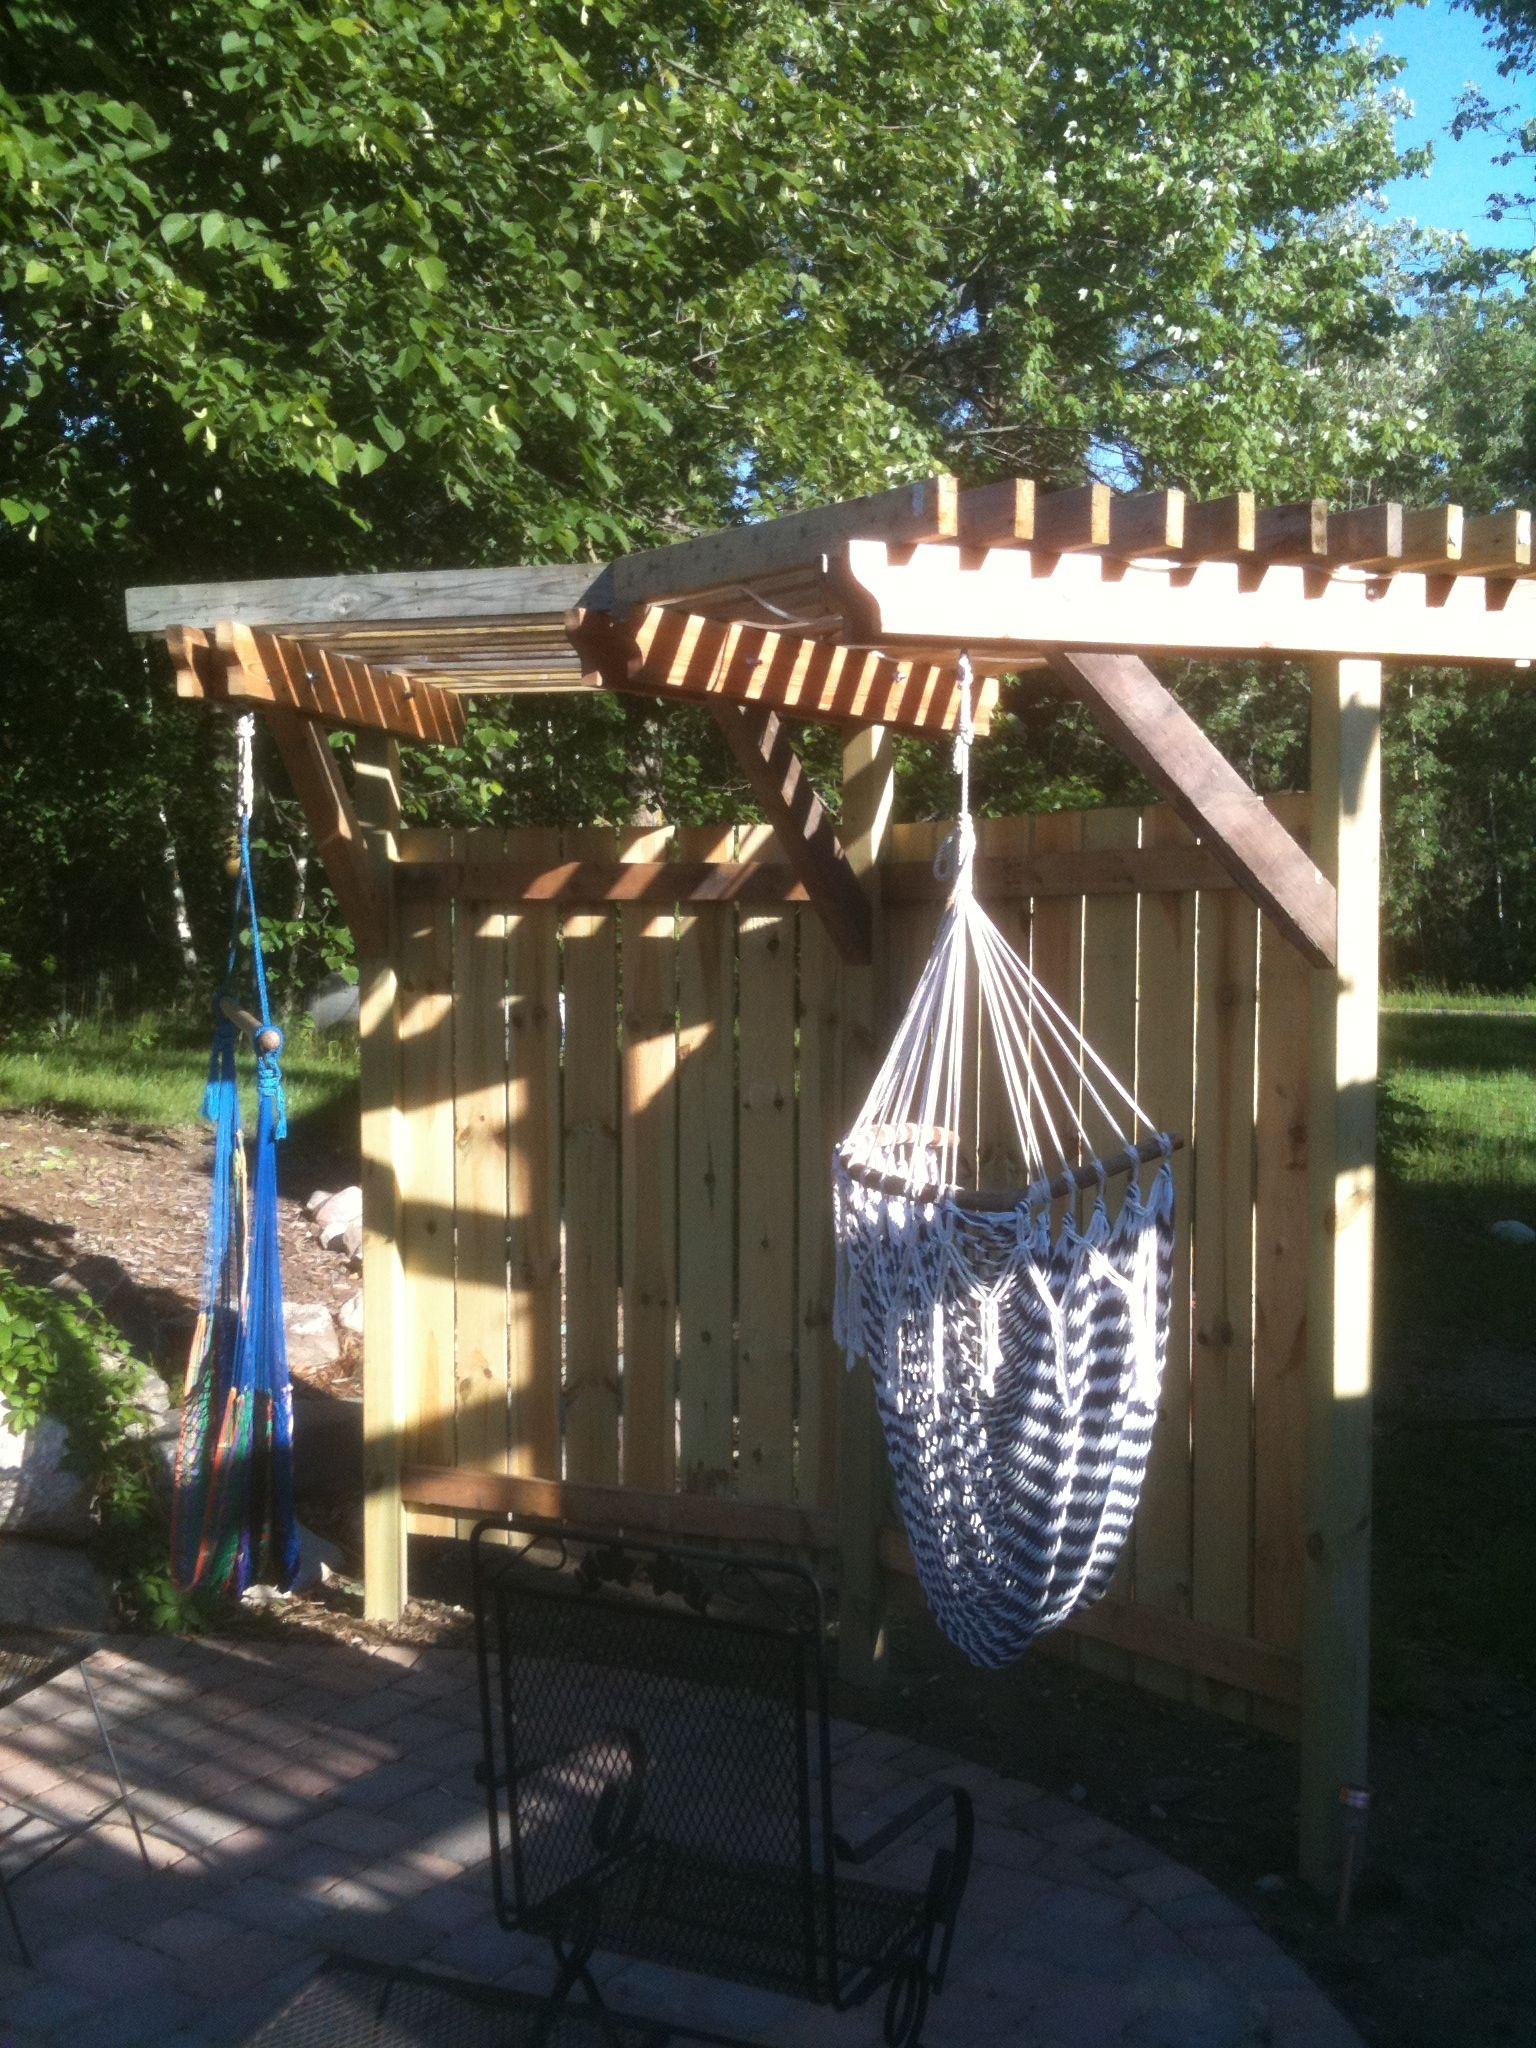 Trellis or shade structure for hanging chair hammock | Landscapes ...